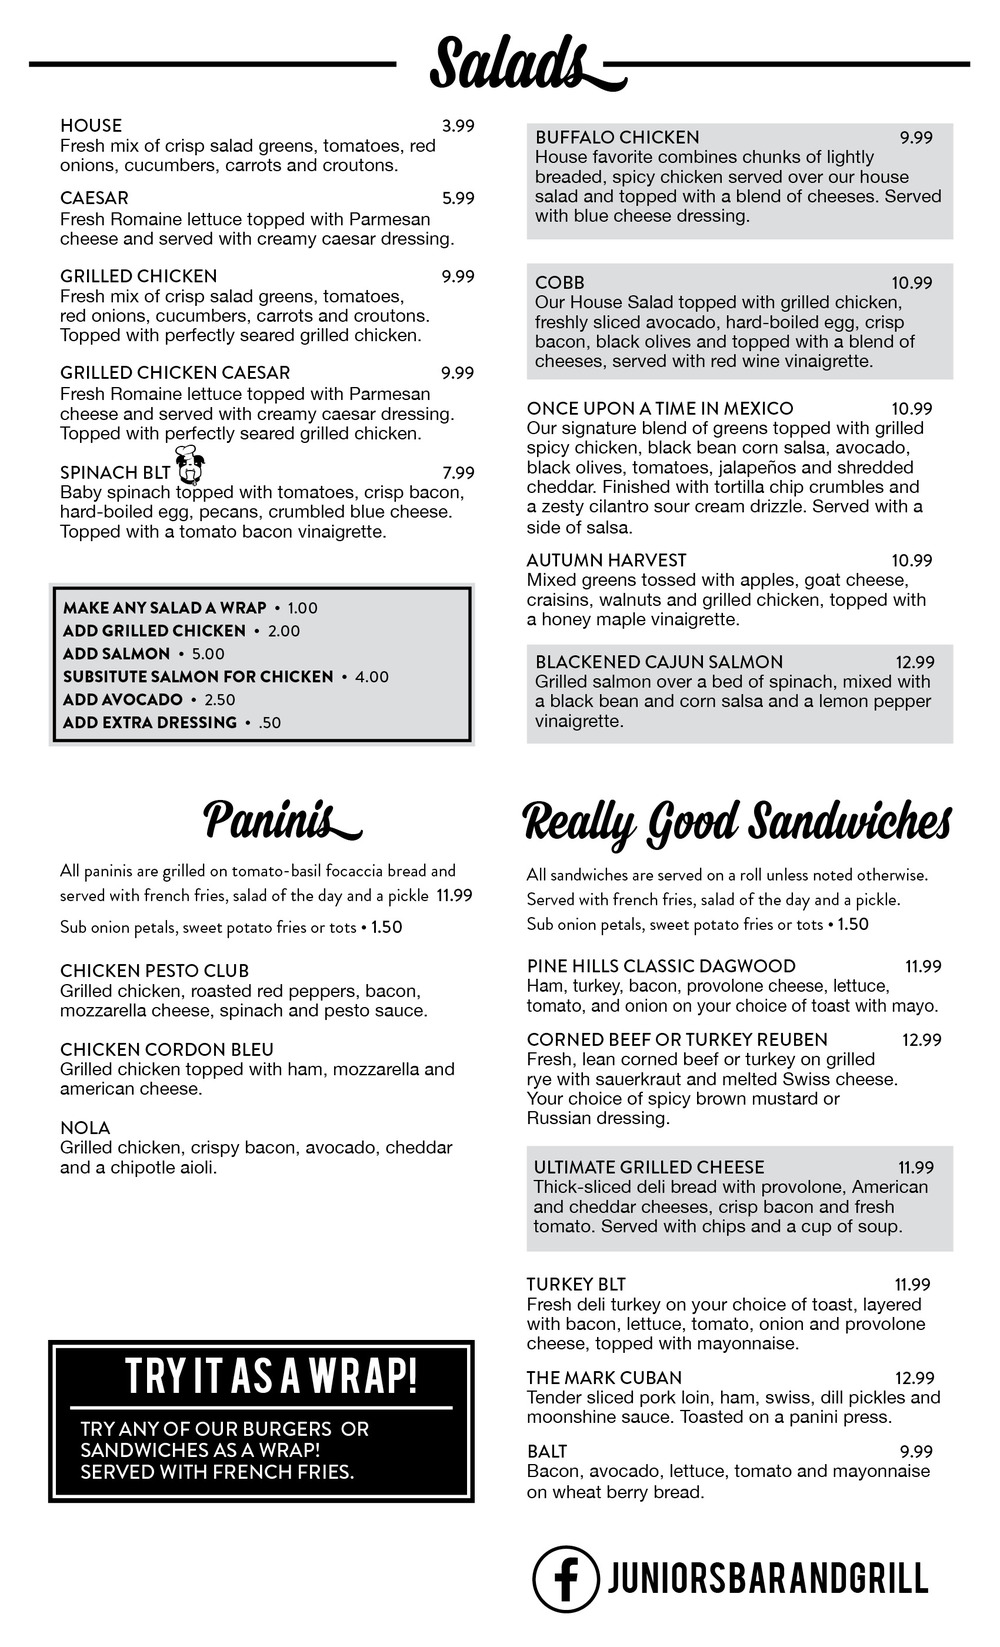 JUNIORS _Menu_JUNE16p3.jpg